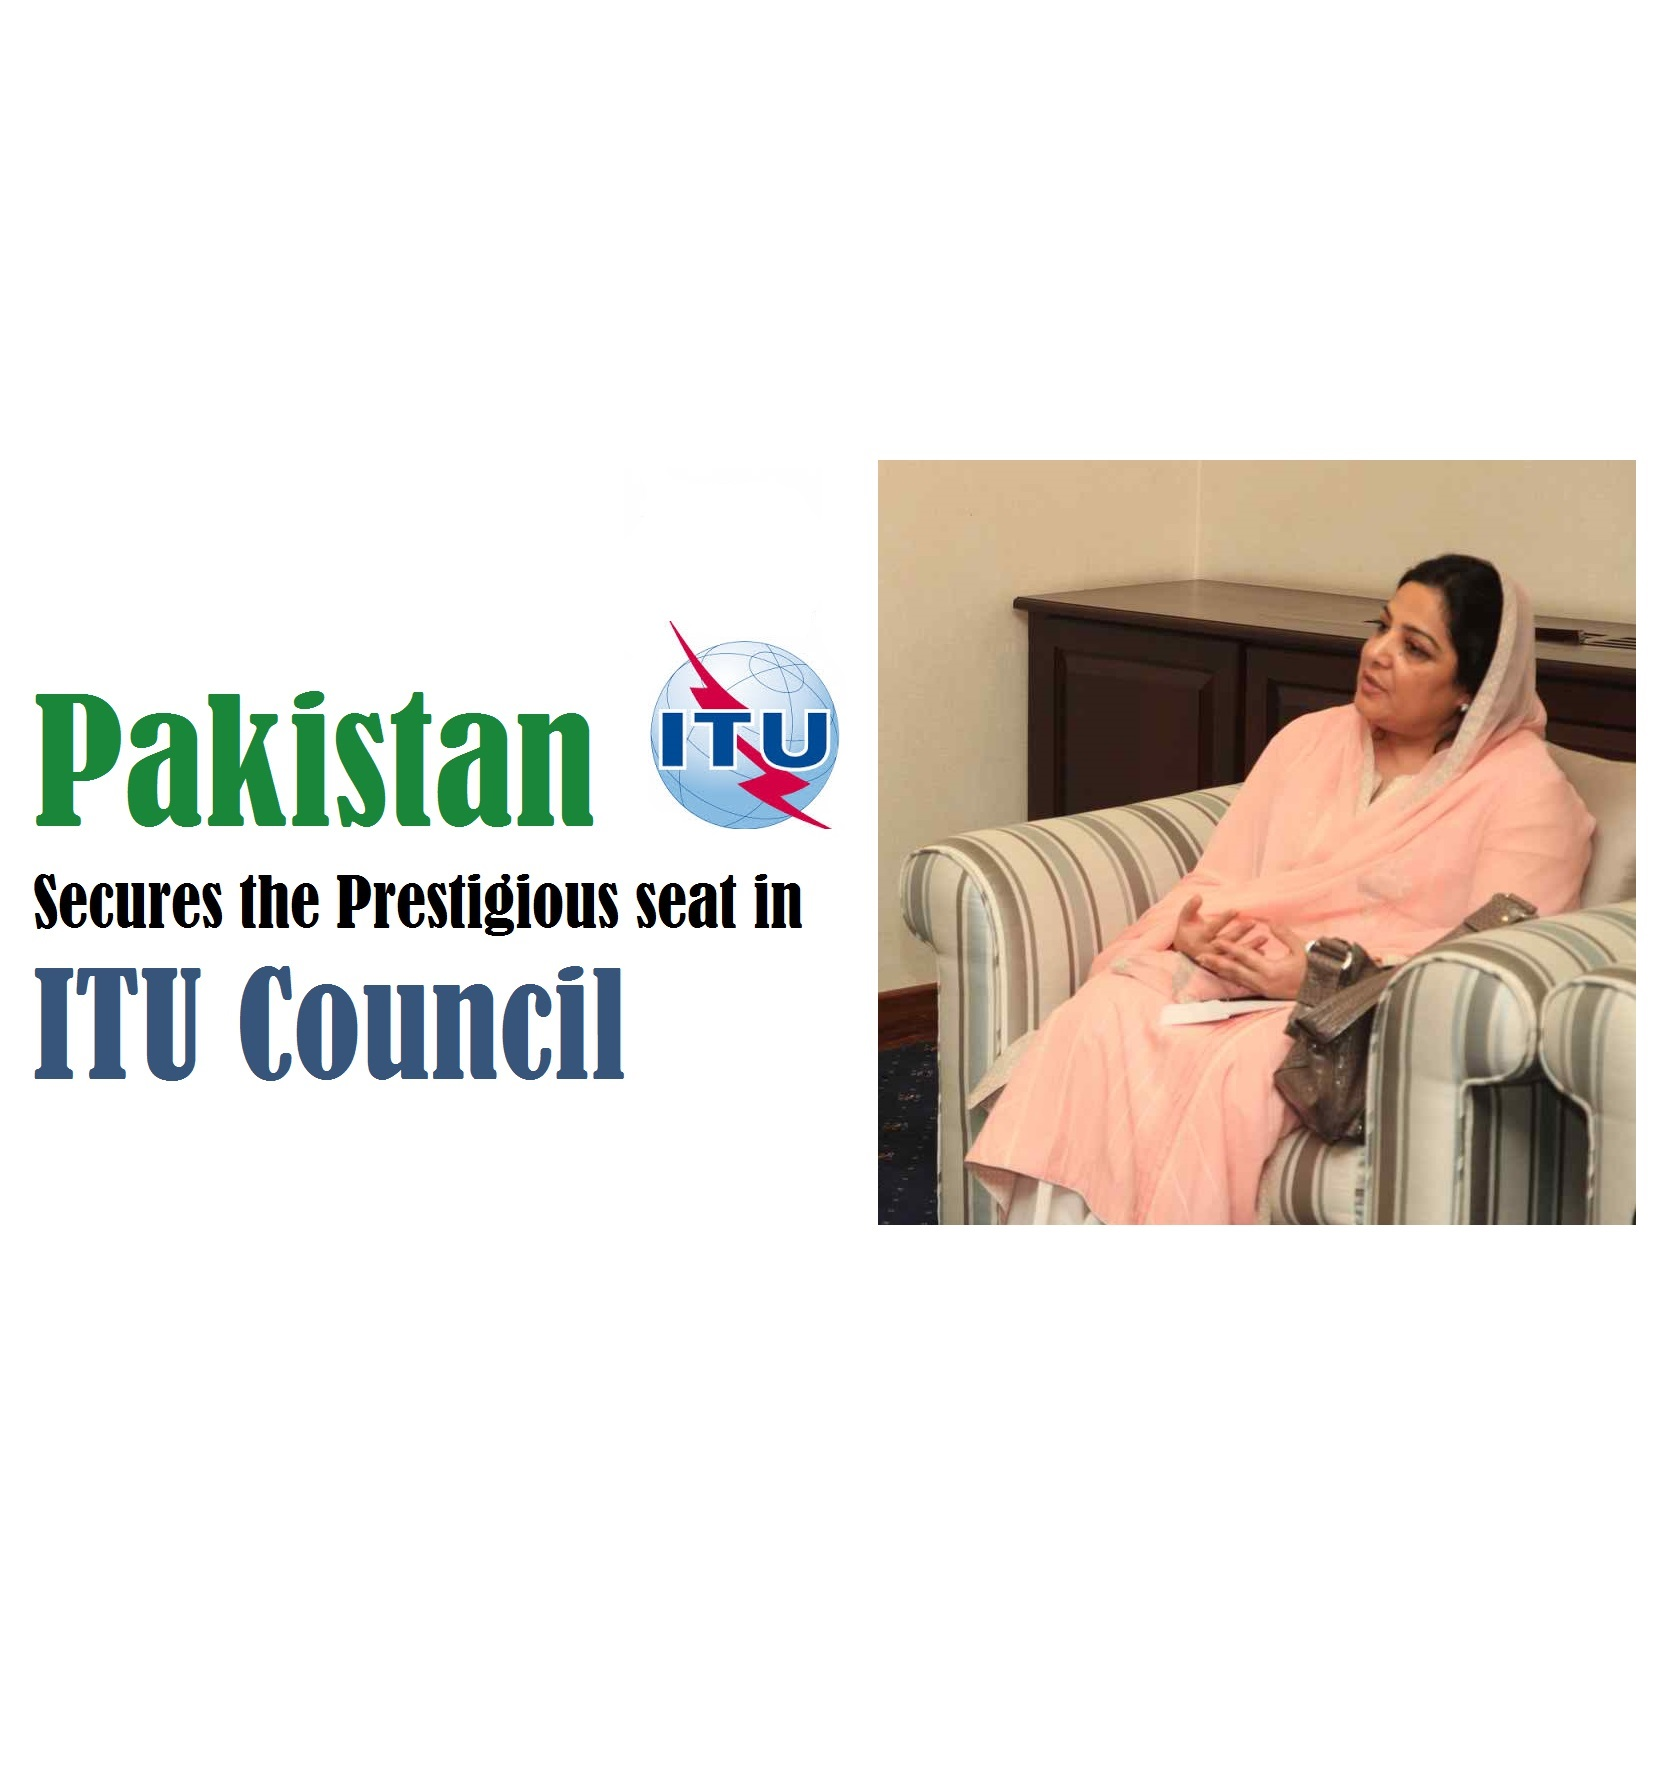 Pakistan secures seat in ITU Council